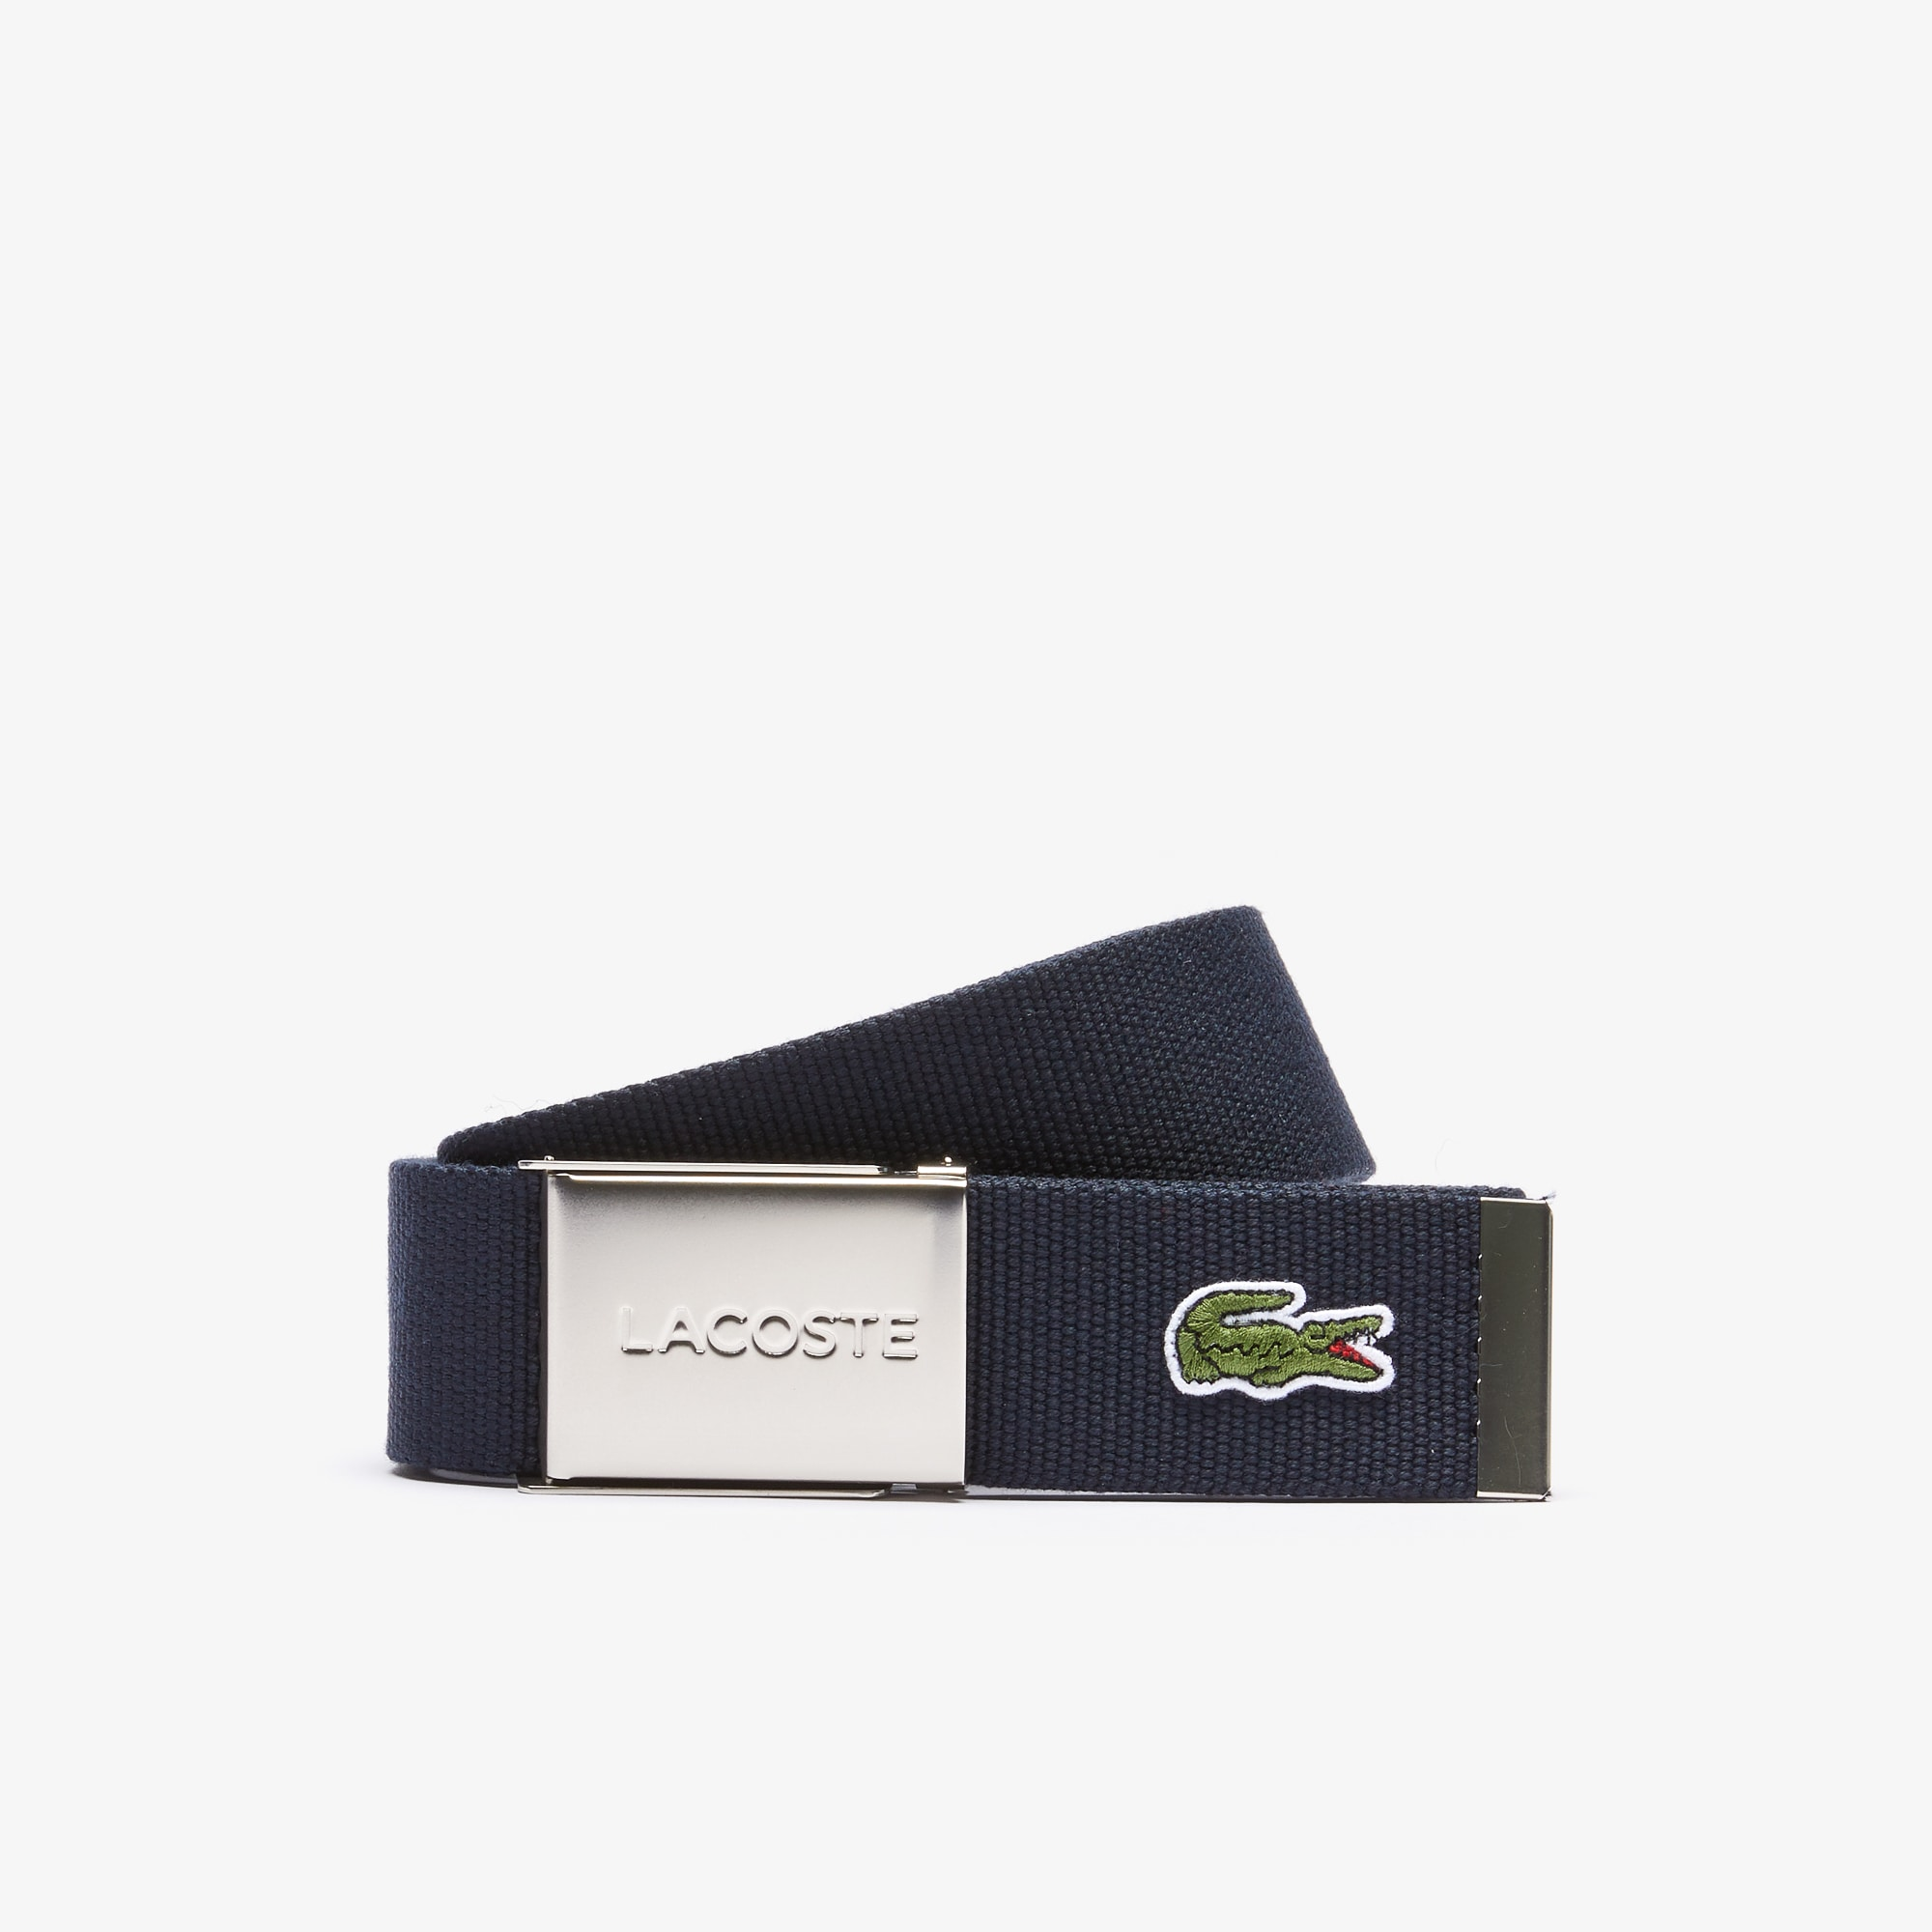 Herren LACOSTE-gravierter Schnallengürtel Made in France Edition